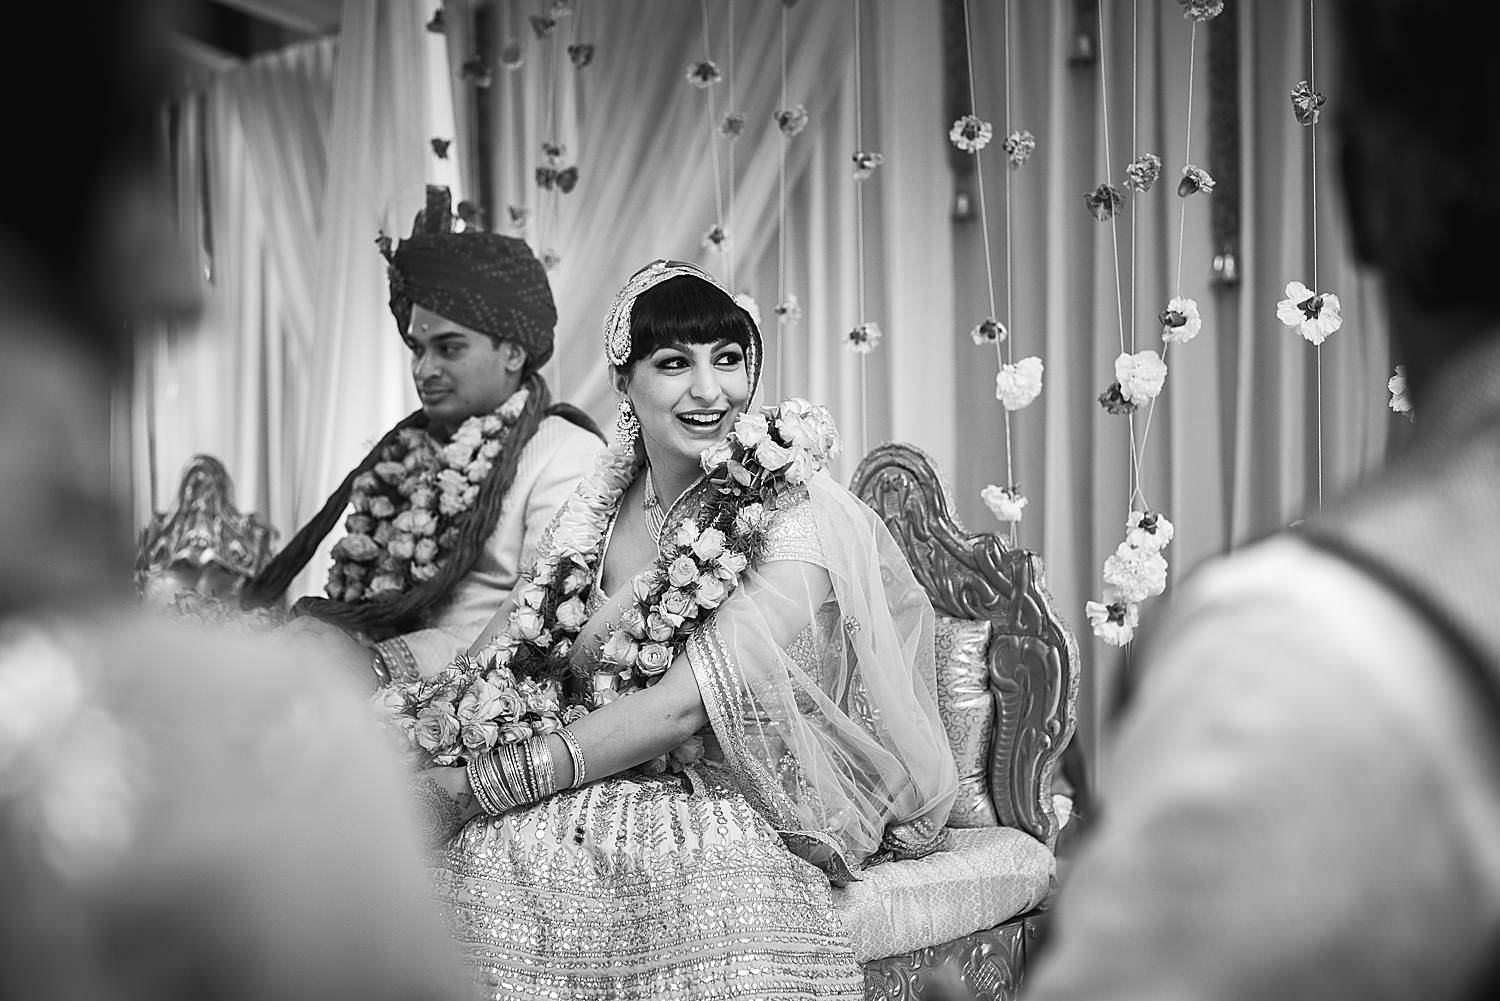 Ritu-Conan-Nikhil-Shastri-Wedding-Photography-39.jpg